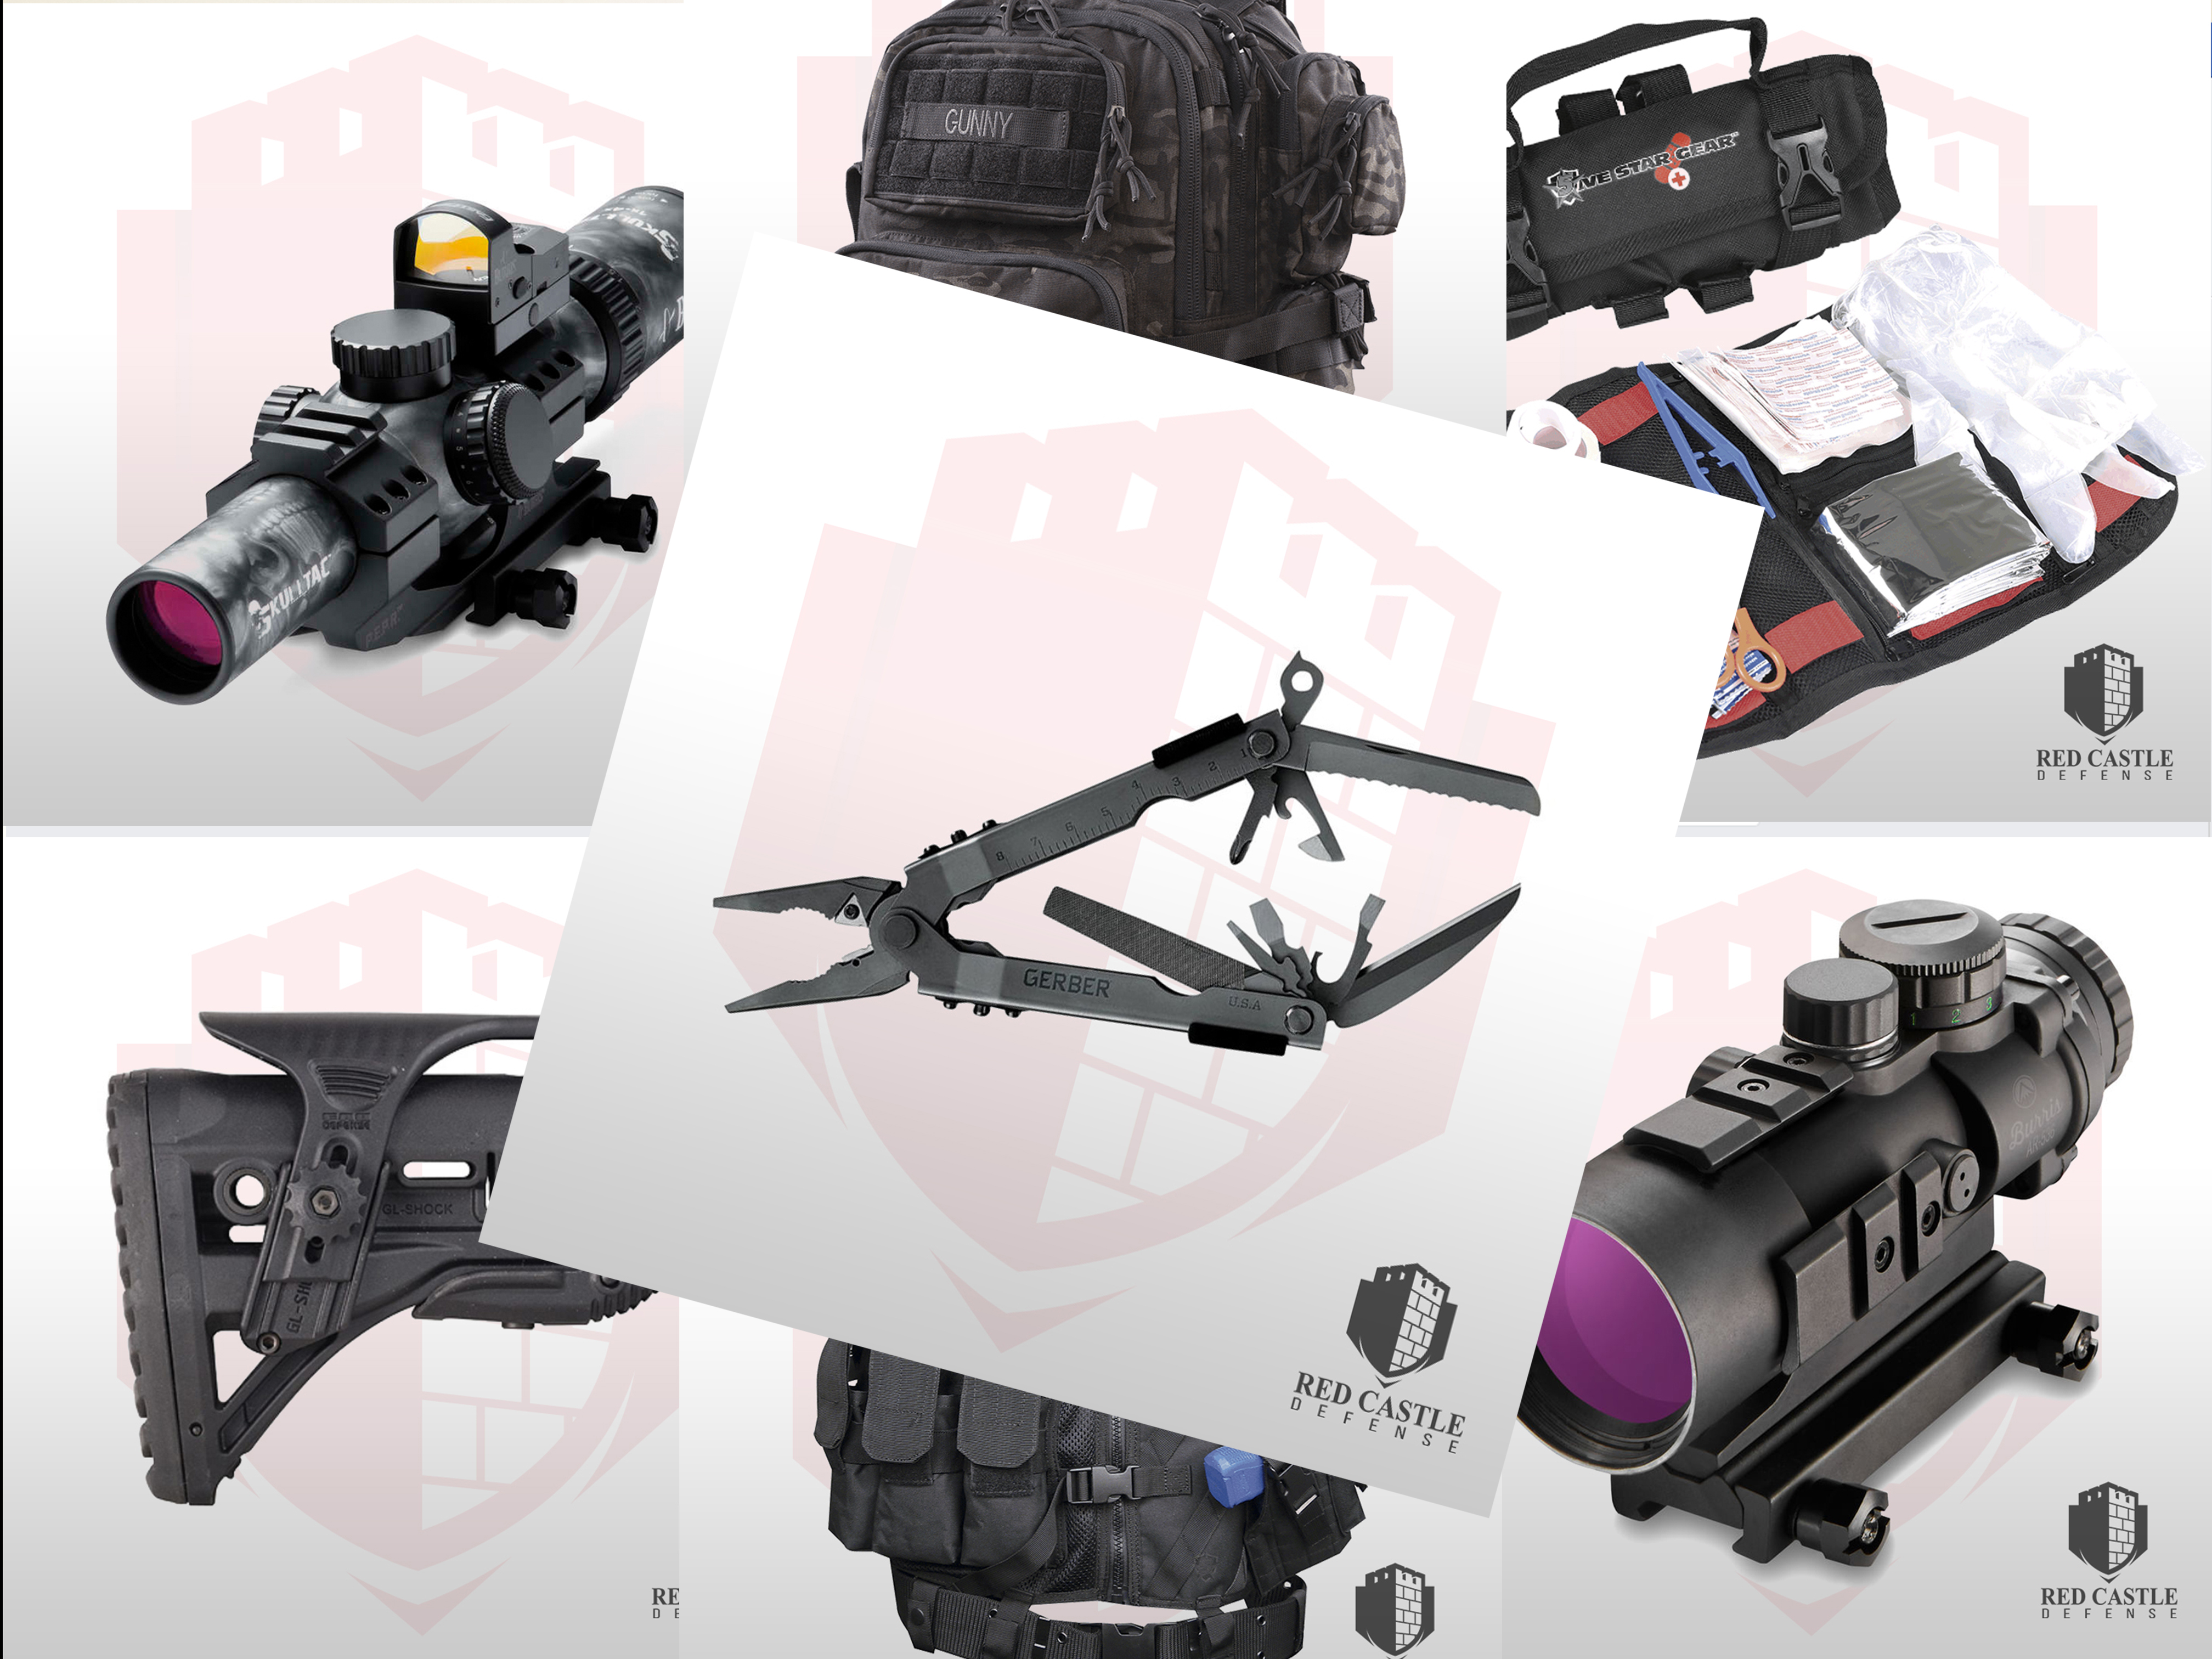 Image collage of Red Castle Defense survival product images